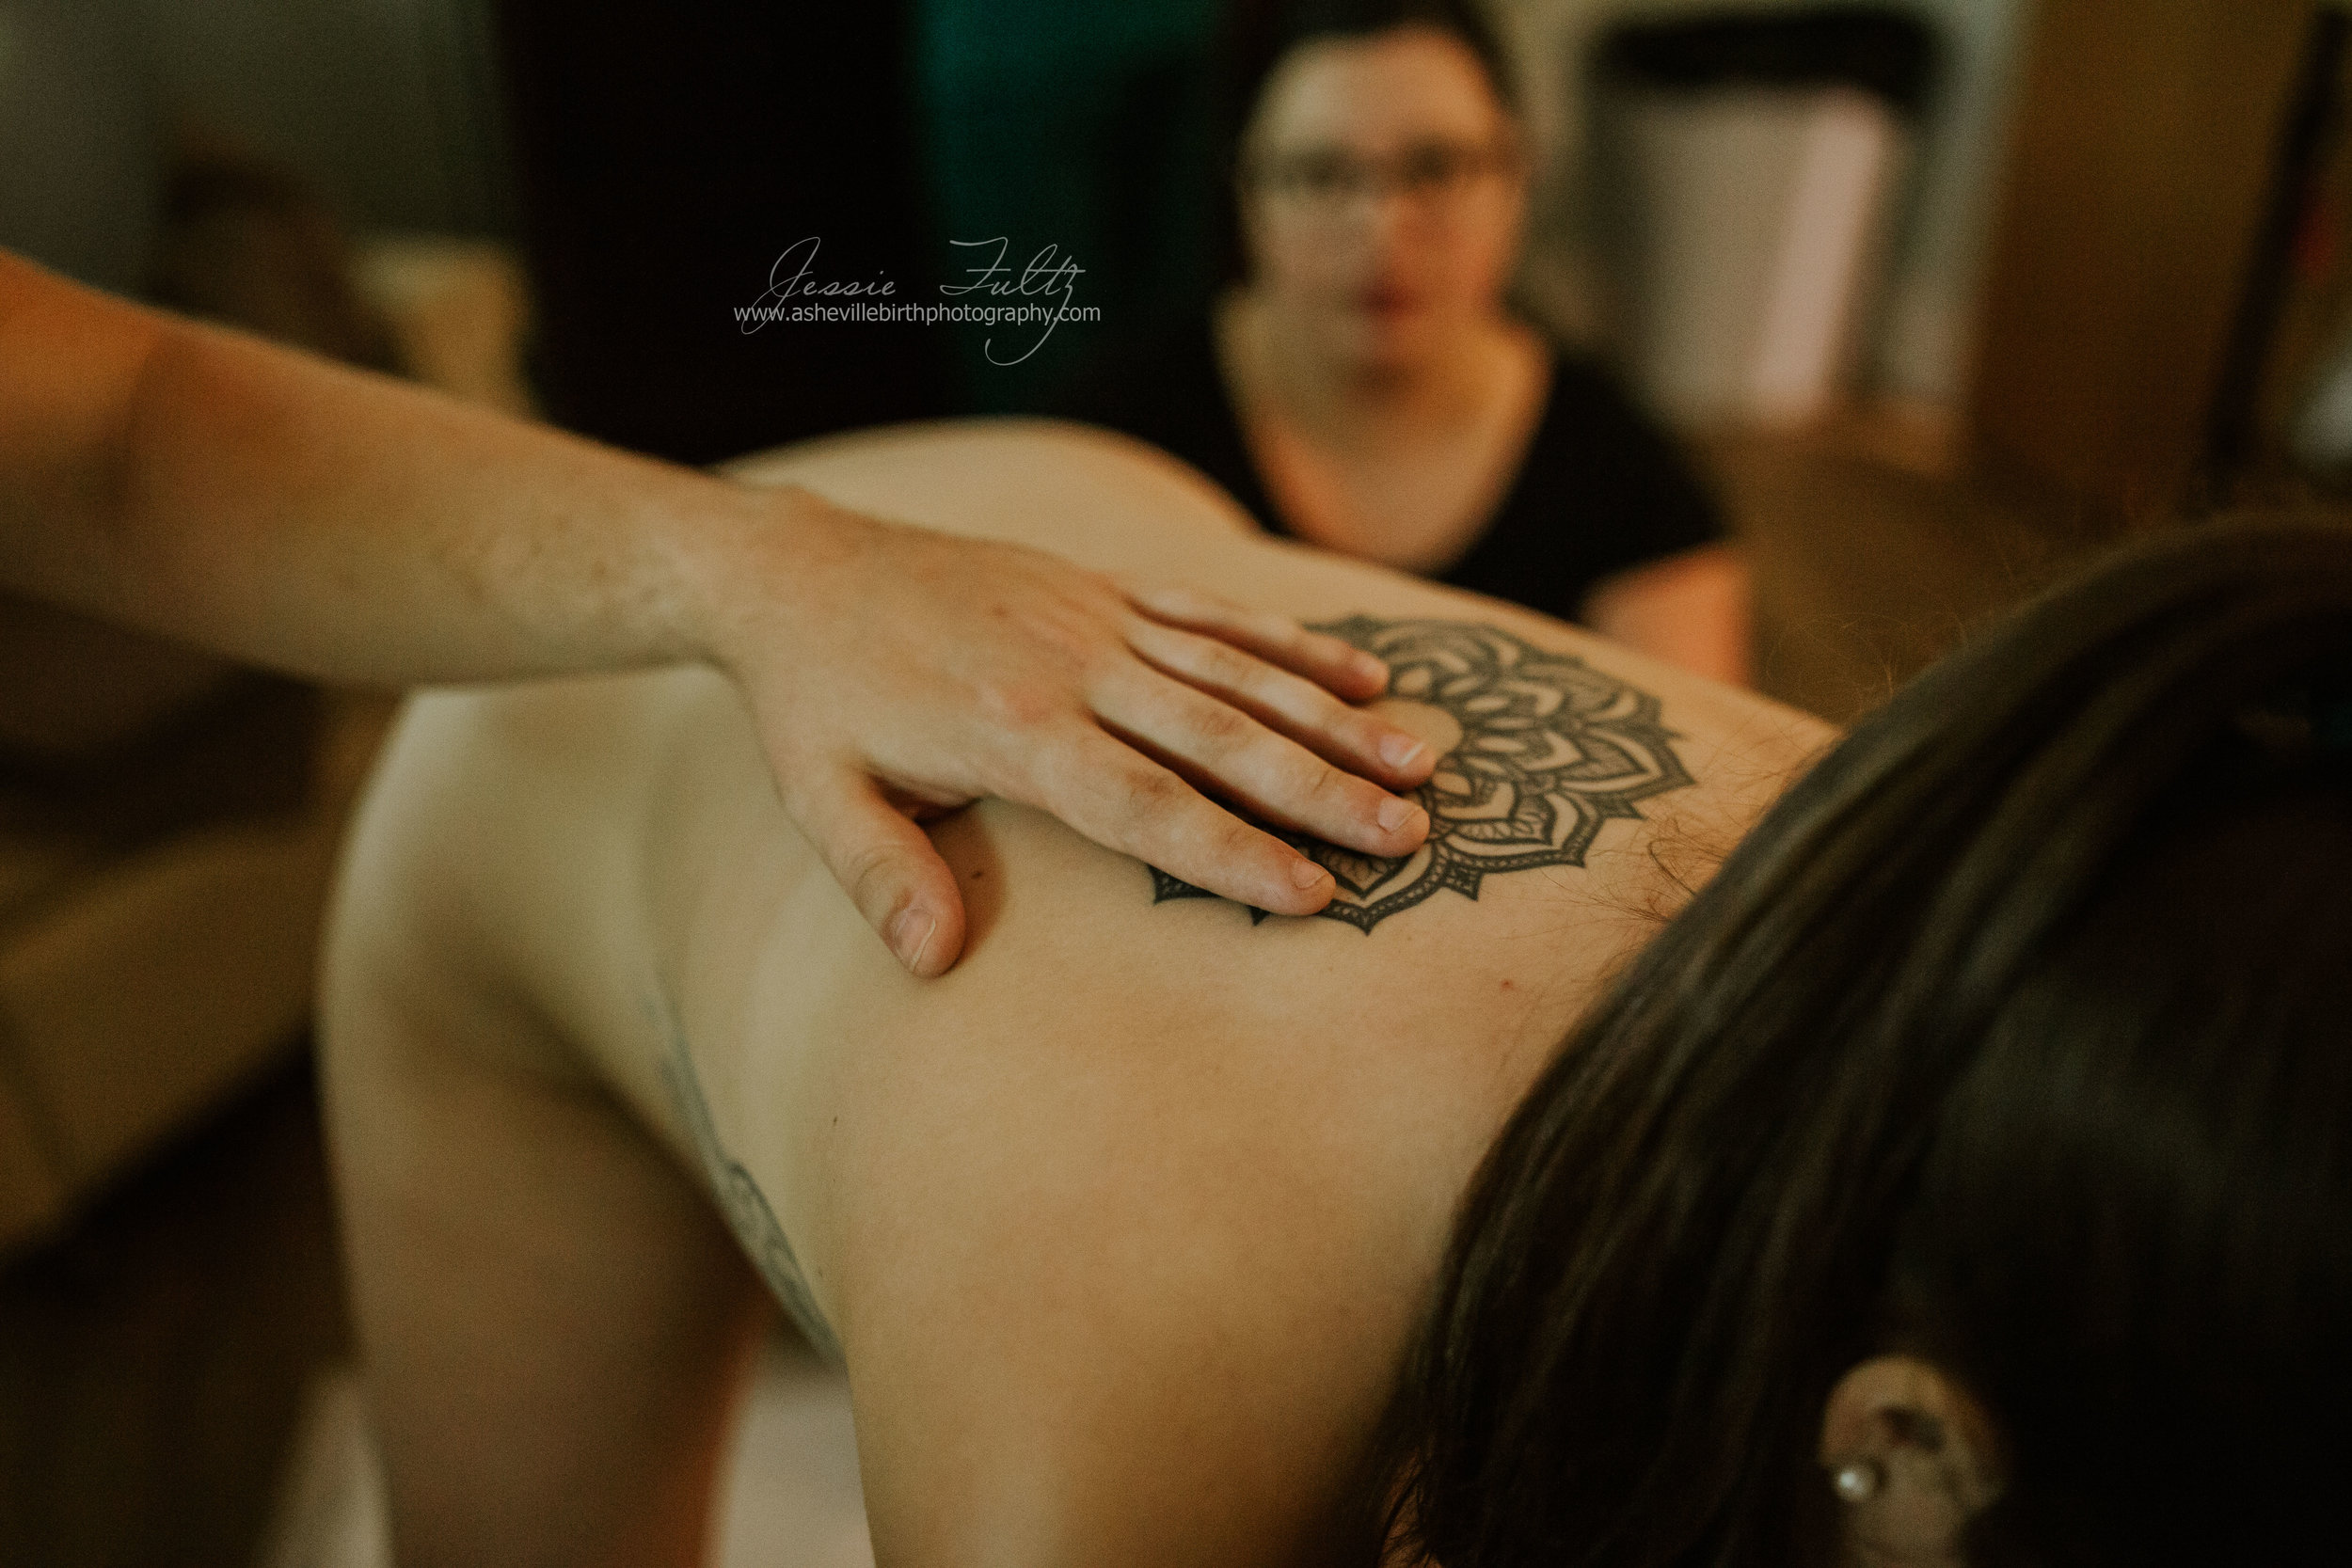 husband's hand on his laboring wife's back with a tribal tattoo